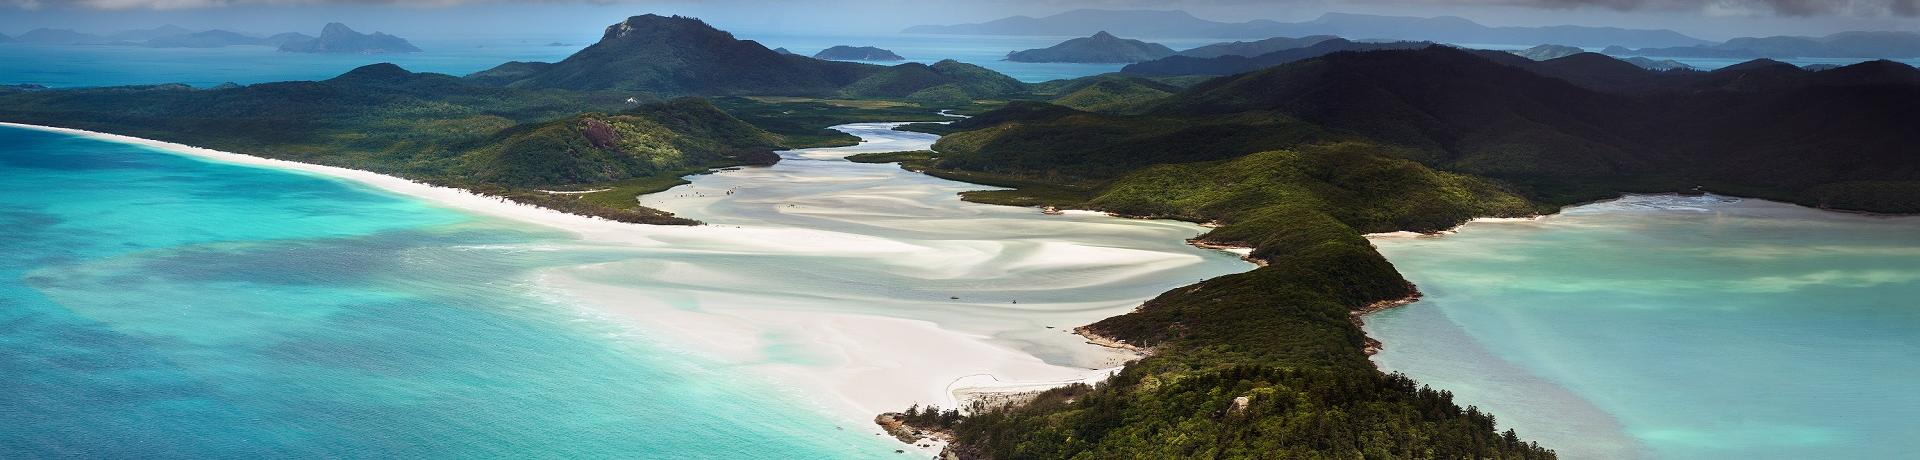 Australien: Whitsunday Island - Emotion